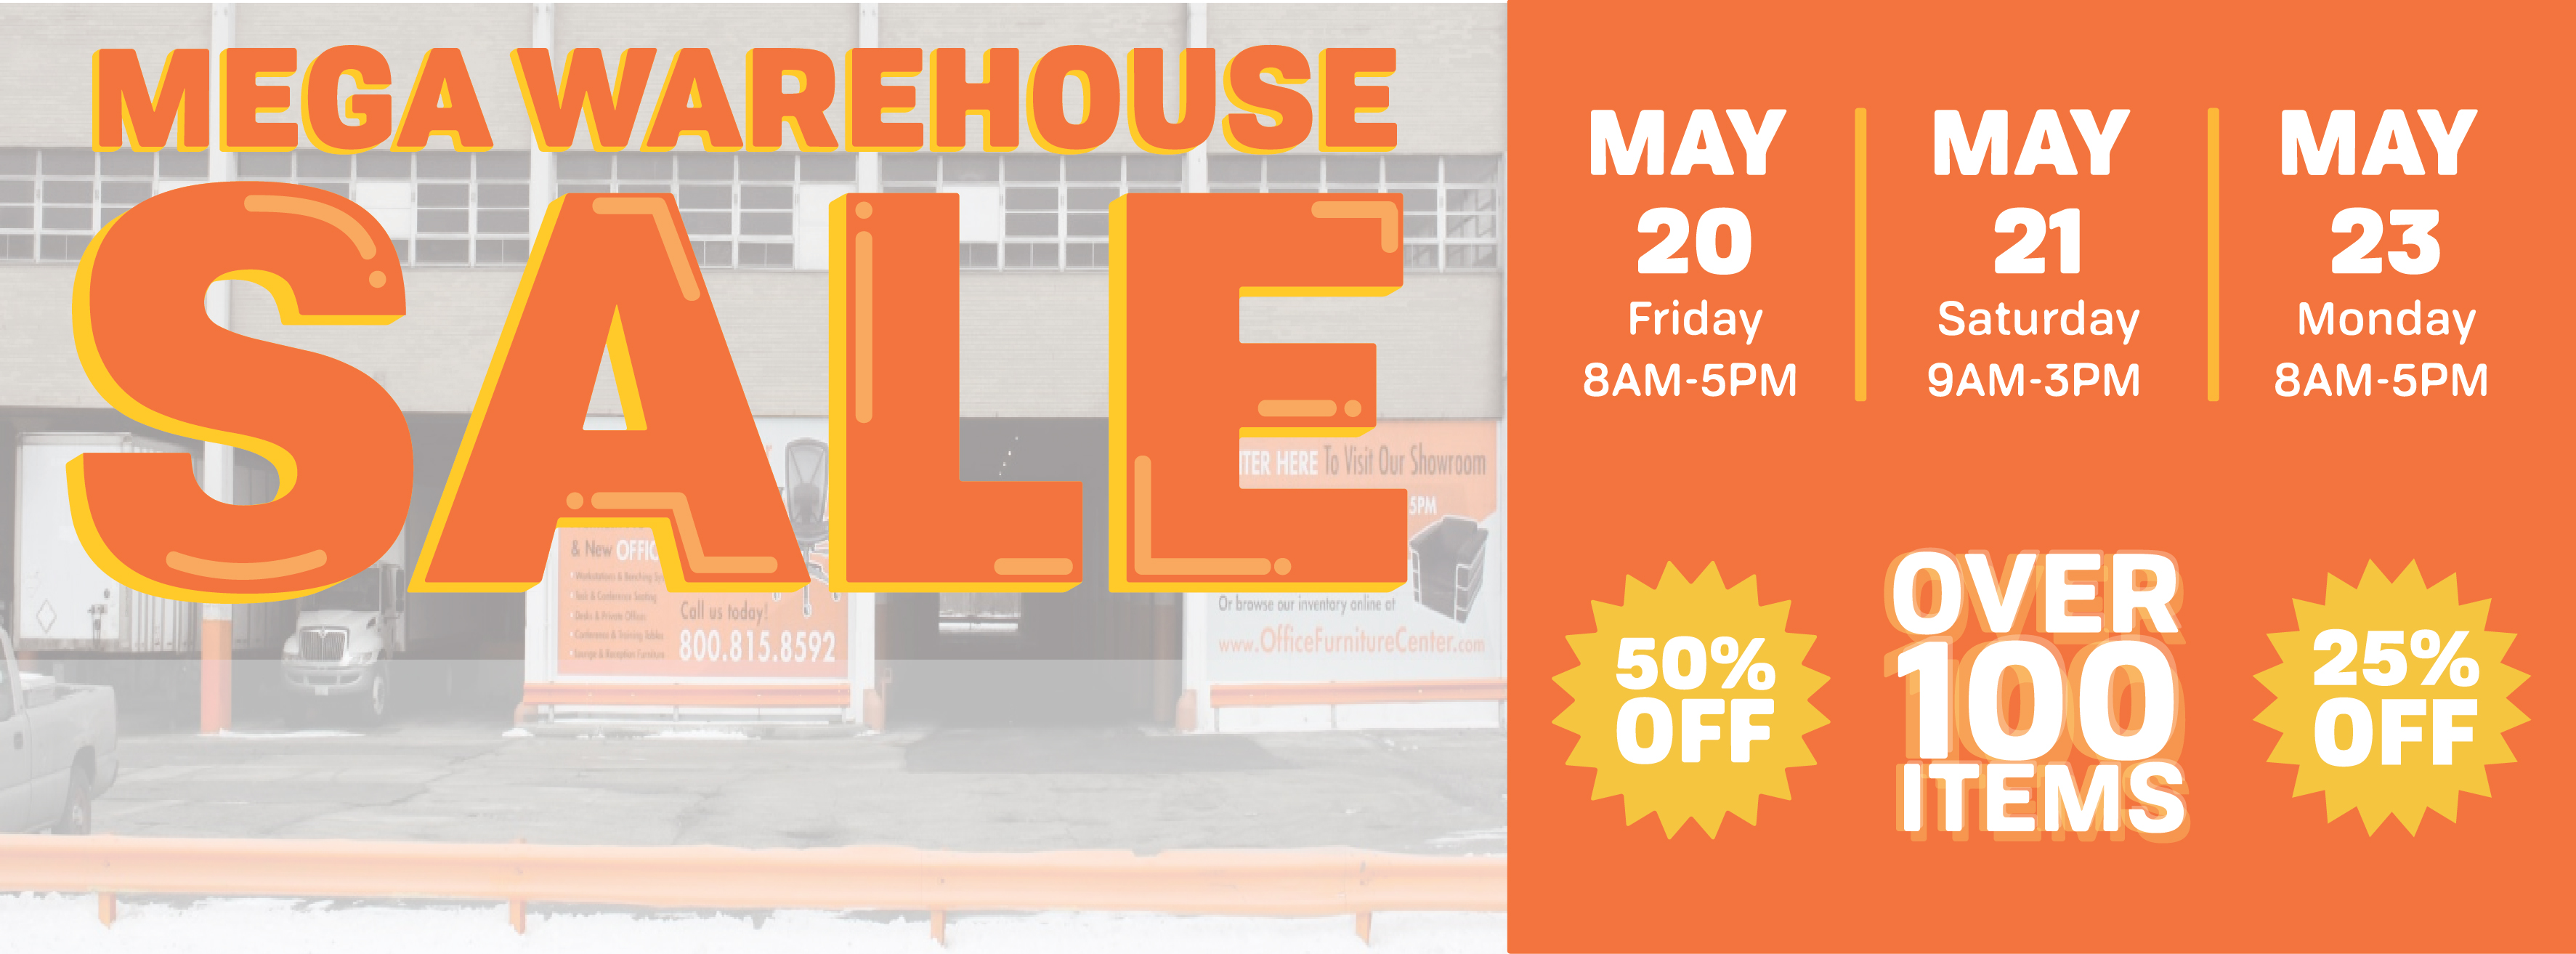 New Remanufactured And Used Office Furniture Chicago Mega Warehouse Sale